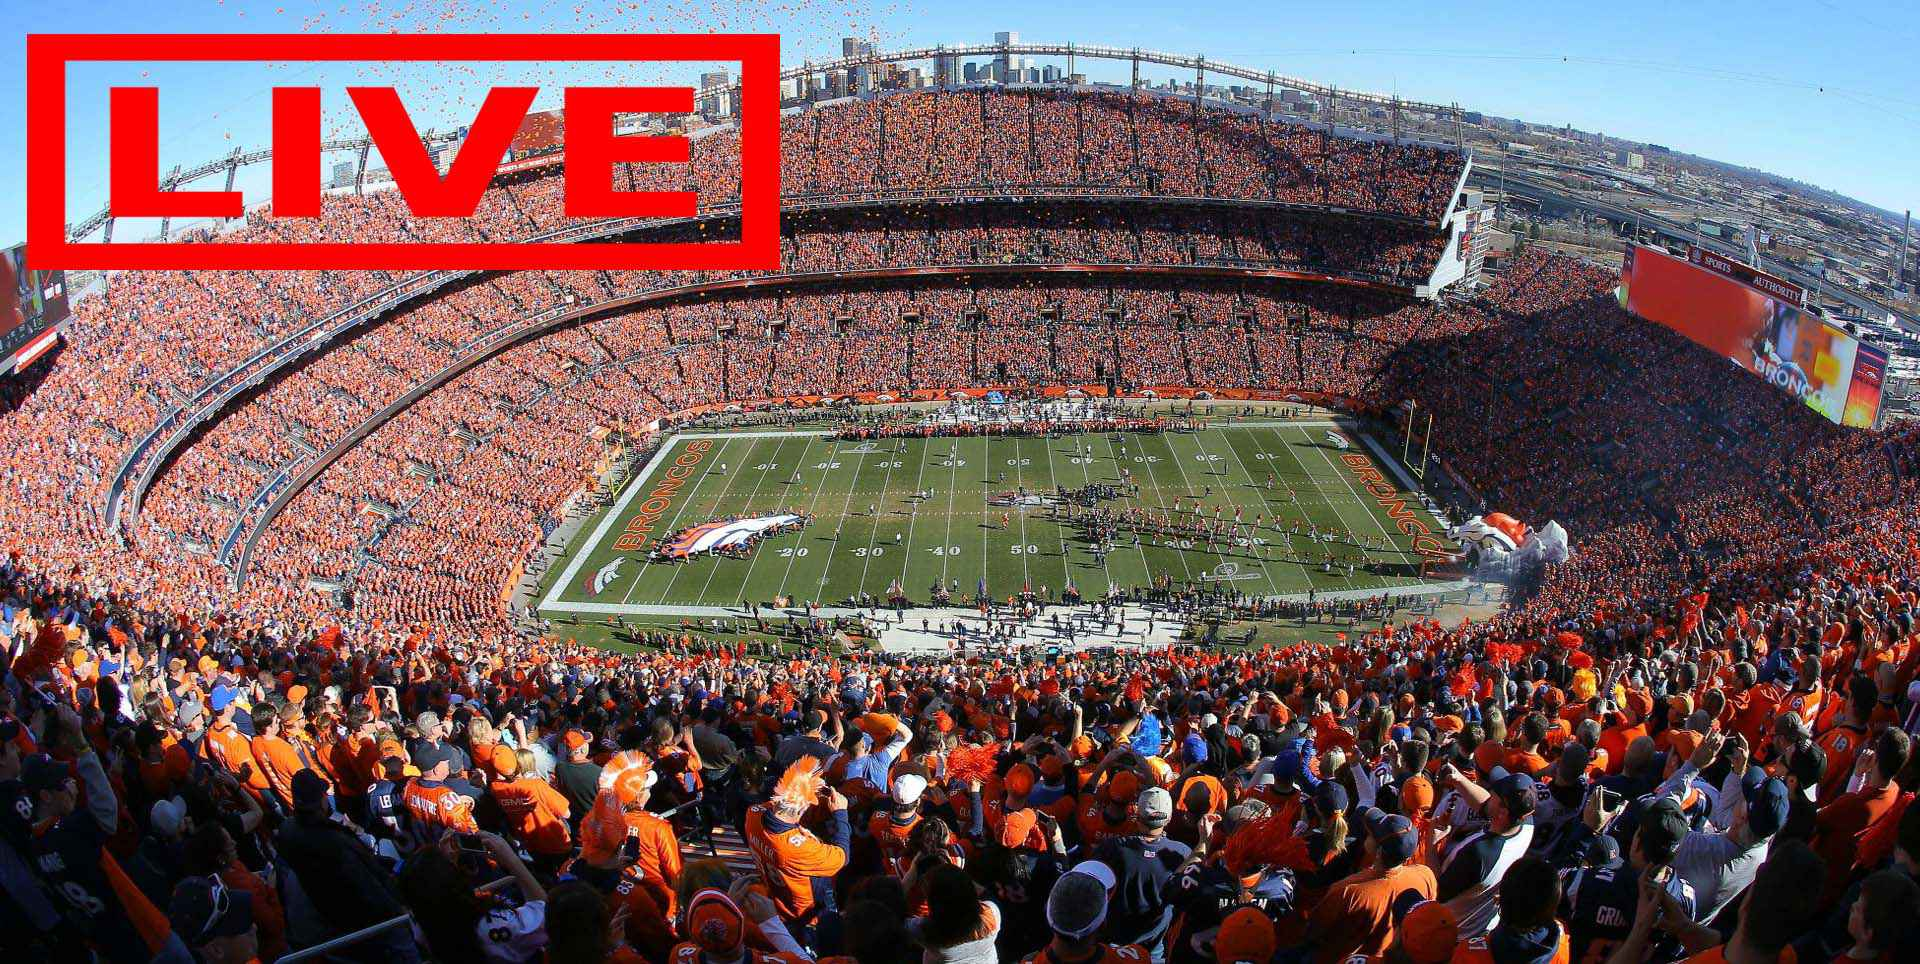 Denver Broncos vs Atlanta Falcons NFL Live Coverage